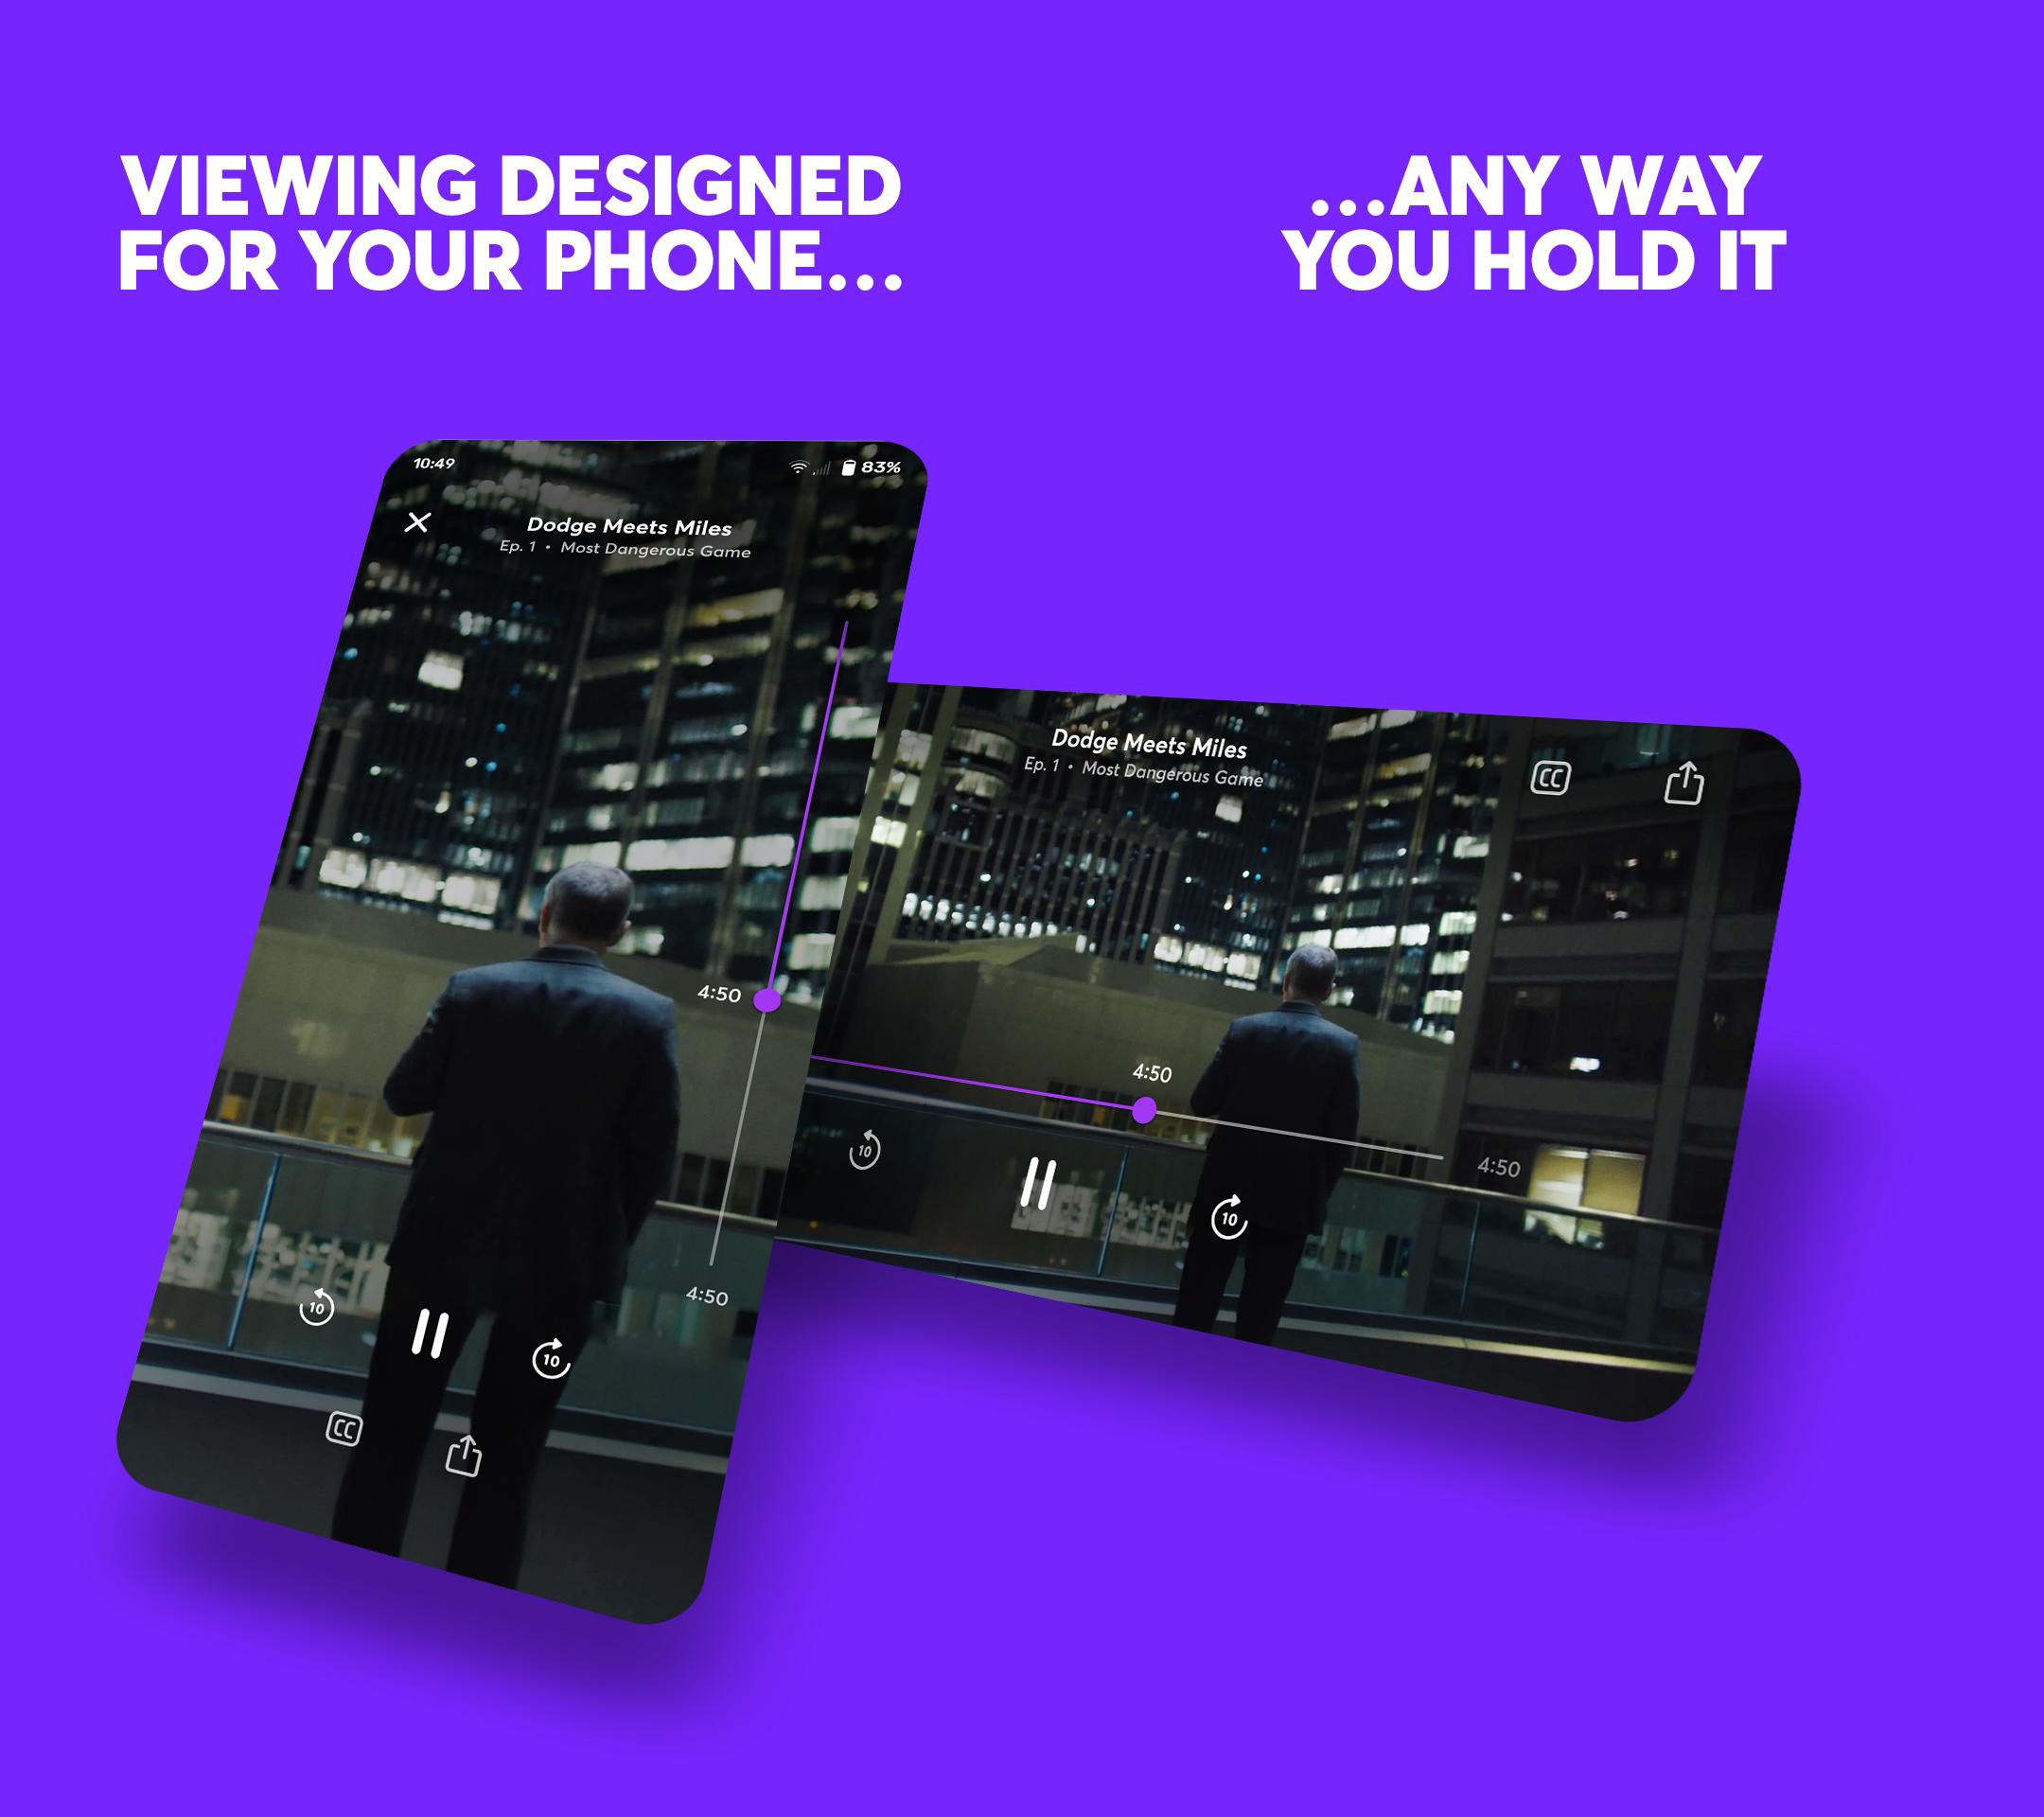 Smartphone-optimized streaming service Quibi launches today